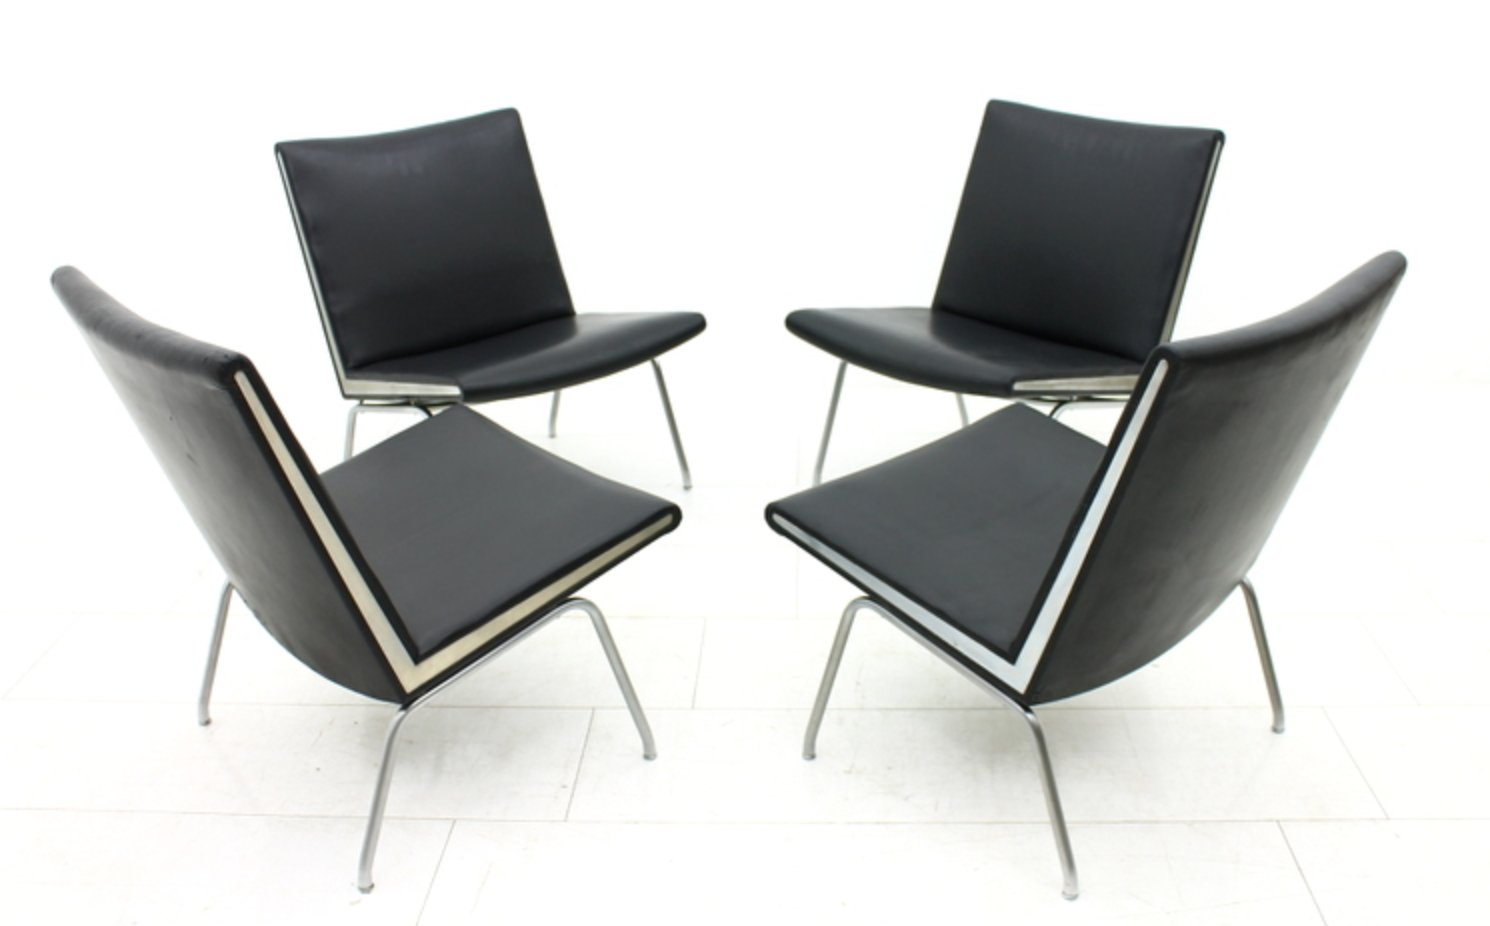 ap 40 flughafen stuhl von hans j wegner f r ap stolen. Black Bedroom Furniture Sets. Home Design Ideas